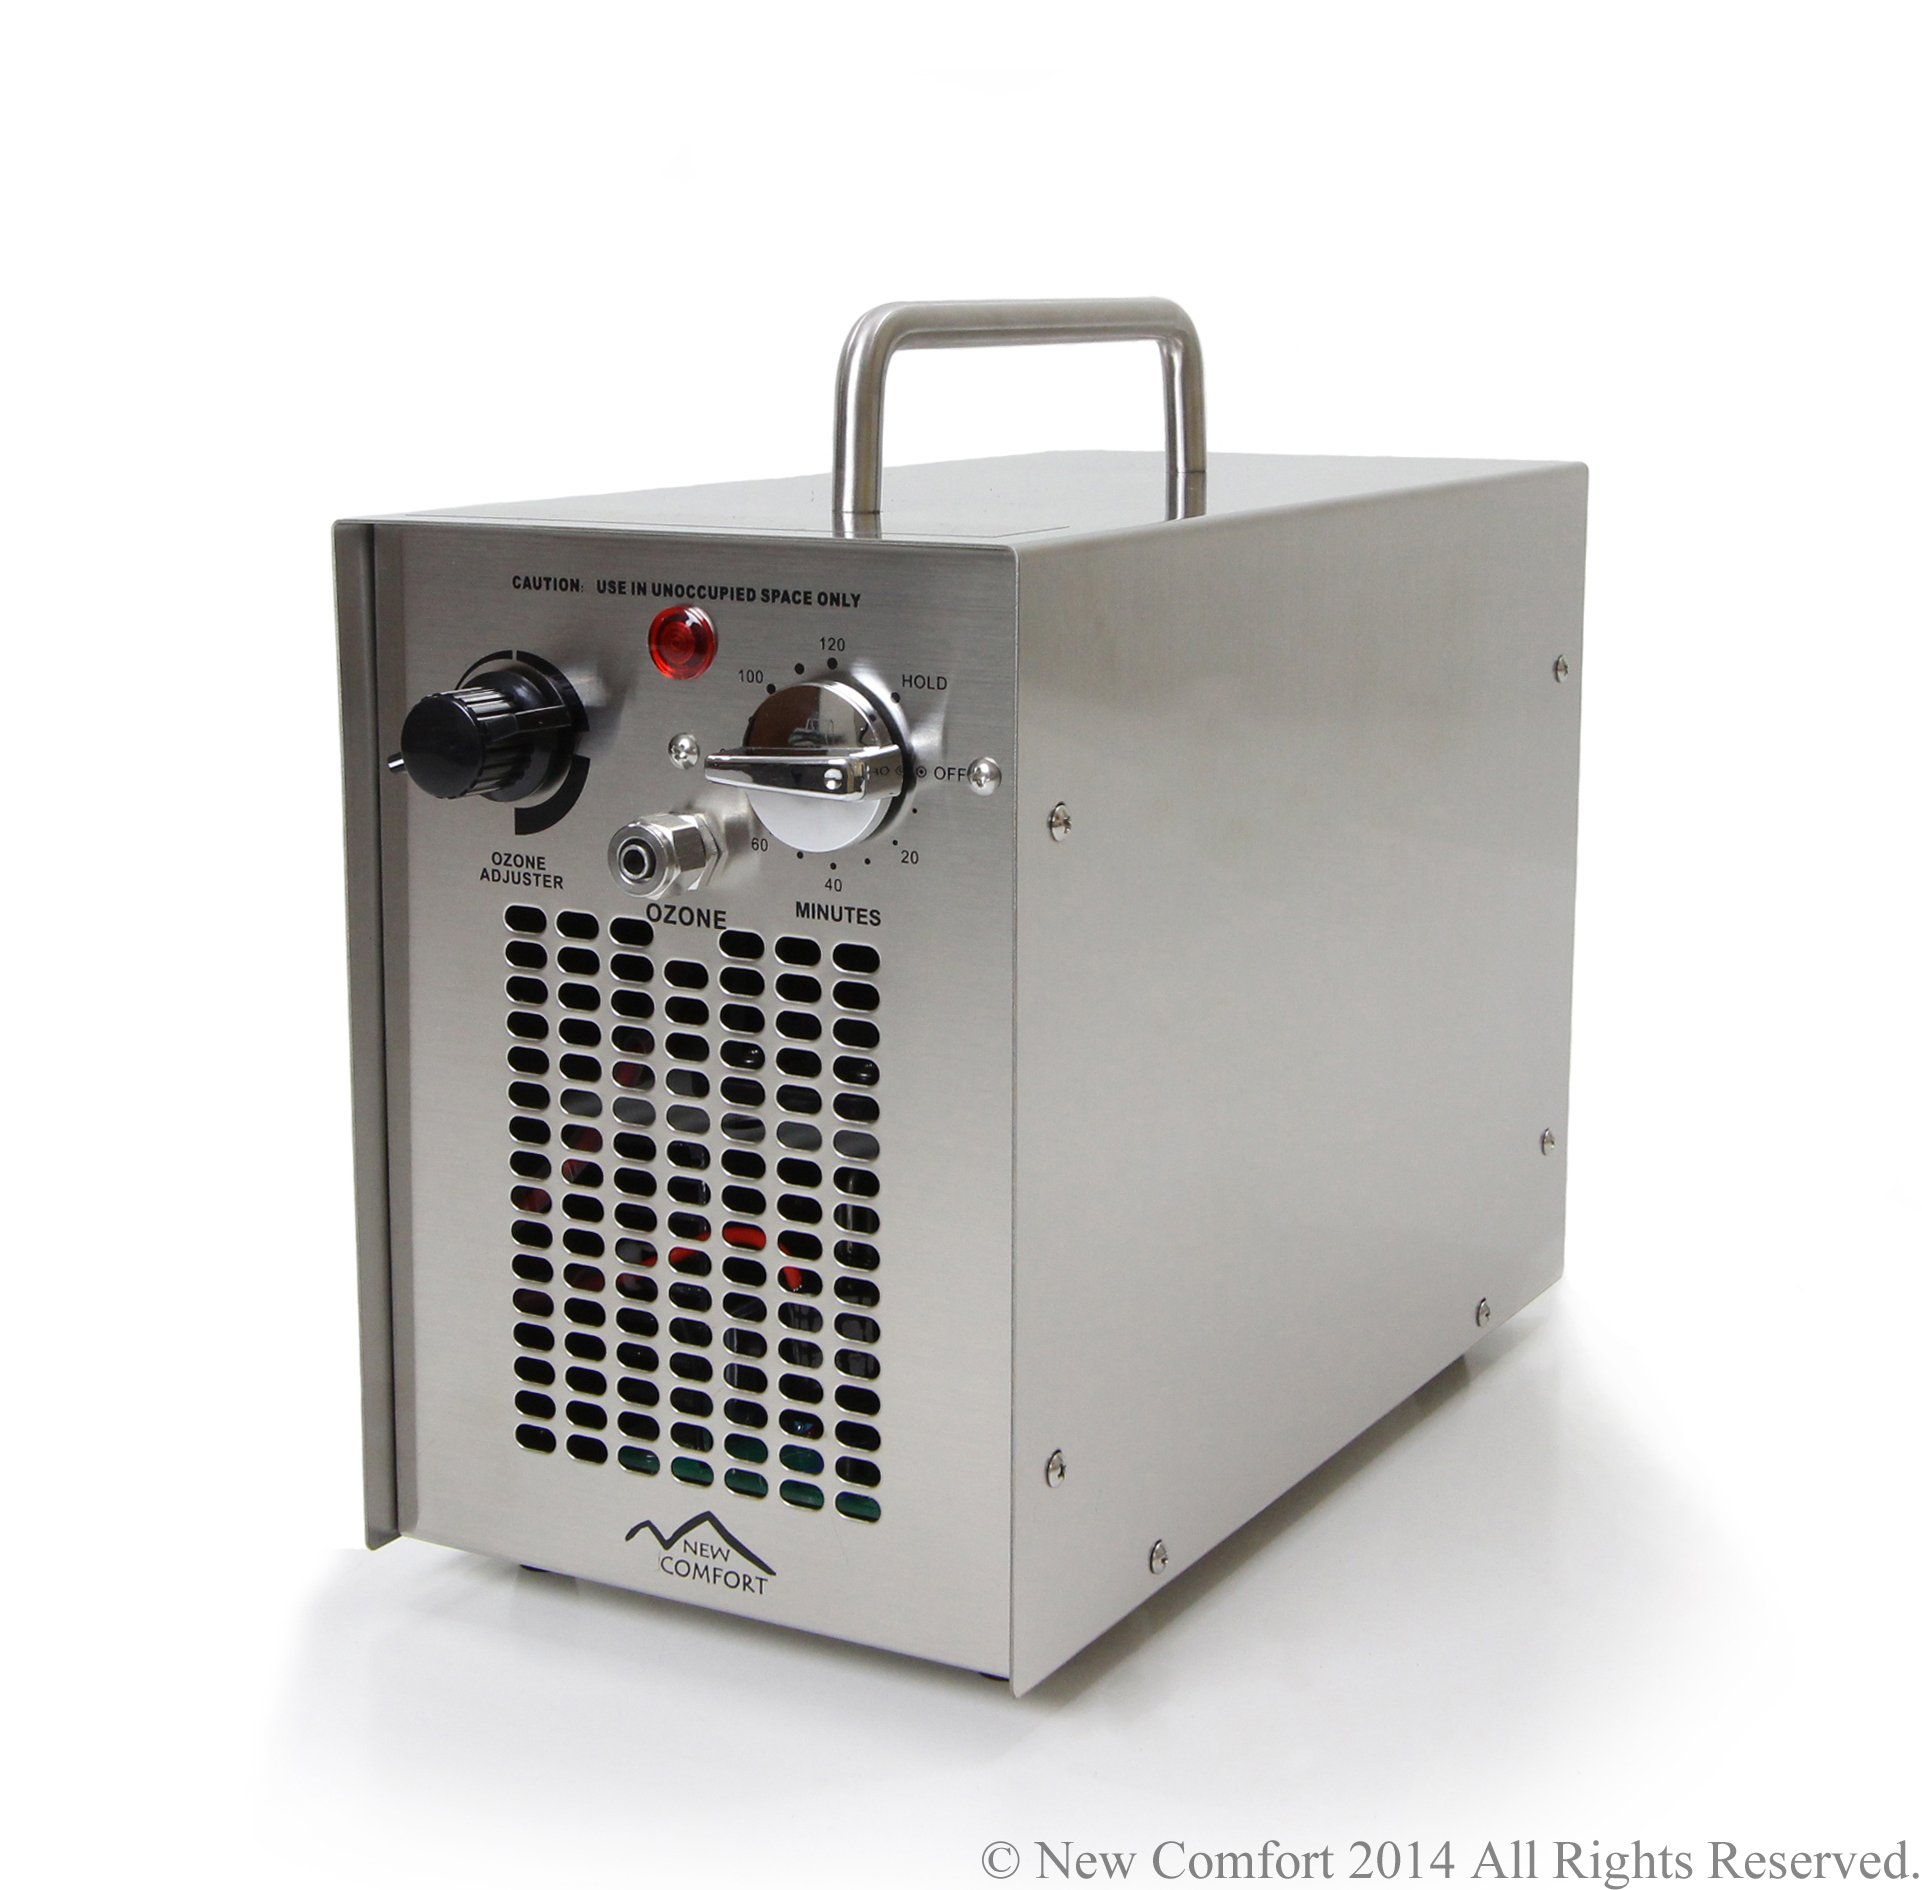 New Comfort Dual Action Stainless Steel Commercial 5000 mg/h Ozone Generator and Purifier for Water and Air Use